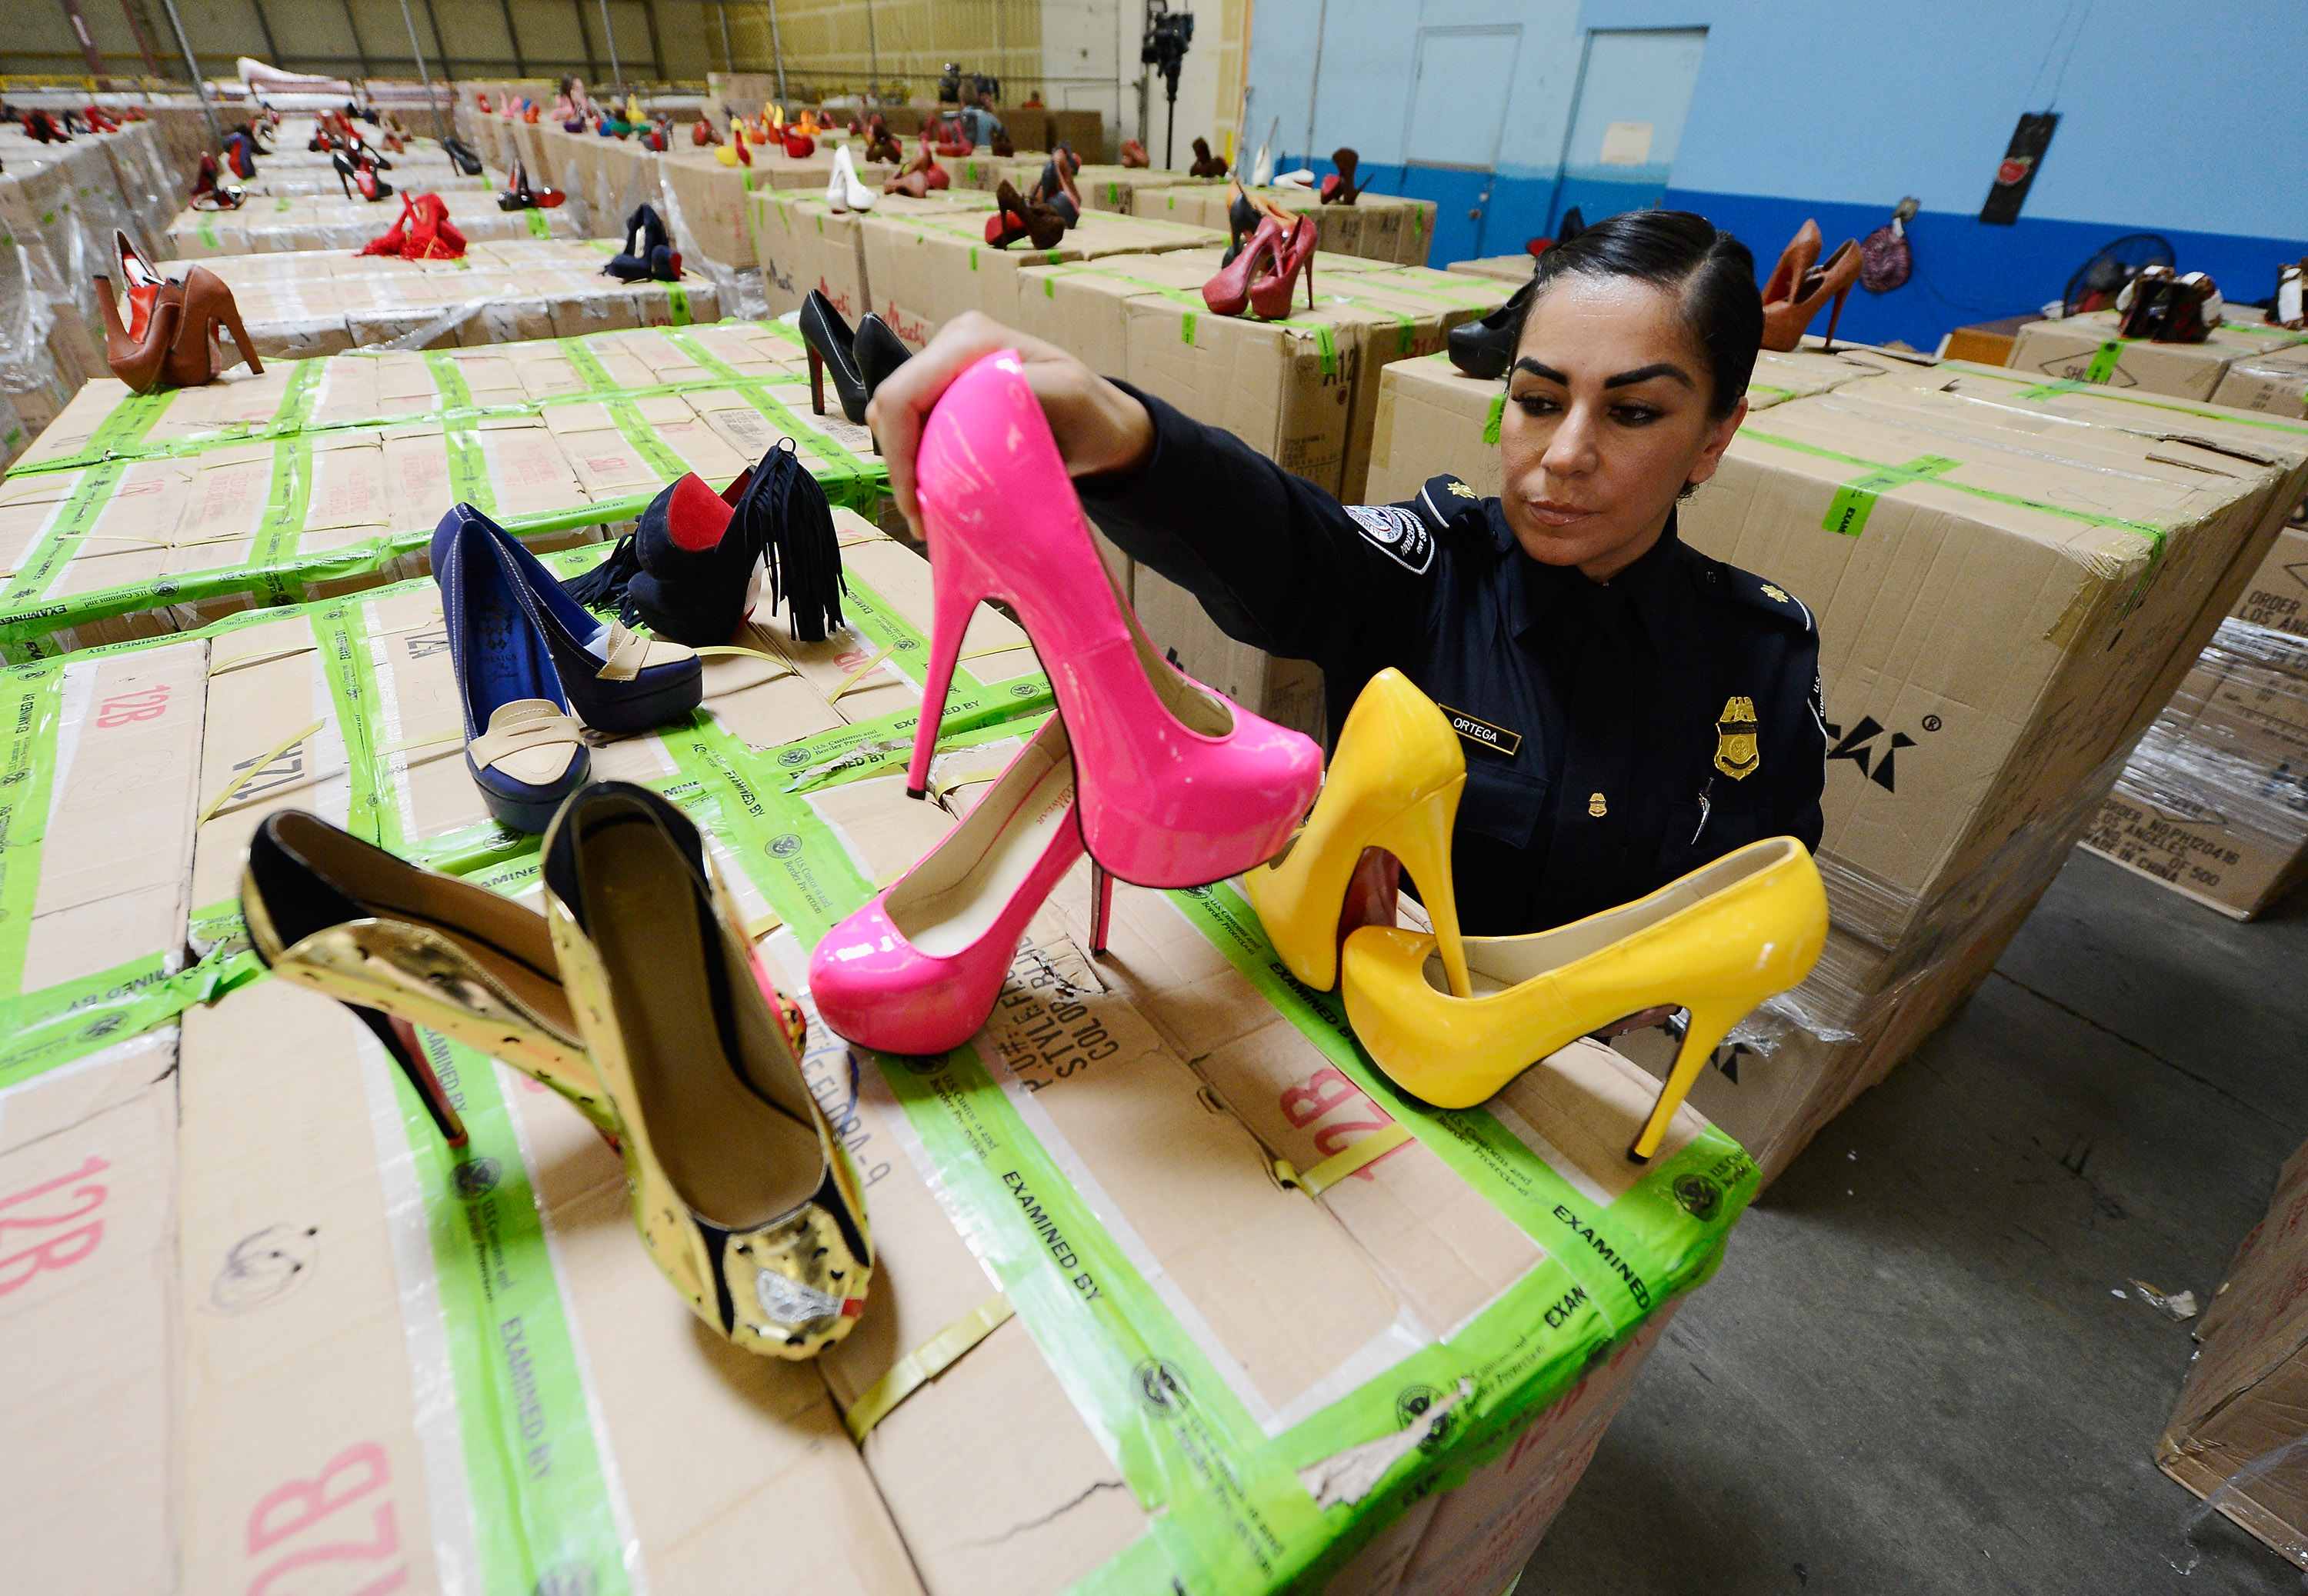 LONG BEACH, CA - AUGUST 16: U.S. Customs and Border Protection officer Elizabeth Ortega displays counterfeit Louboutin pumps and high heels featuring the distinctive red sole of French designer Christian Louboutin are displayed at Price Transfer Warehouse on August 16, 2012 in Long Beach, California. Between July 27 and Aug. 14, import specialists and officers assigned to the Los Angeles and Long Beach seaport have seized a total of five shipments from China containing more than 20,000 pairs in violation of the French designer's trademark with a potential retail value of $18 million. (Photo by Kevork Djansezian/Getty Images)